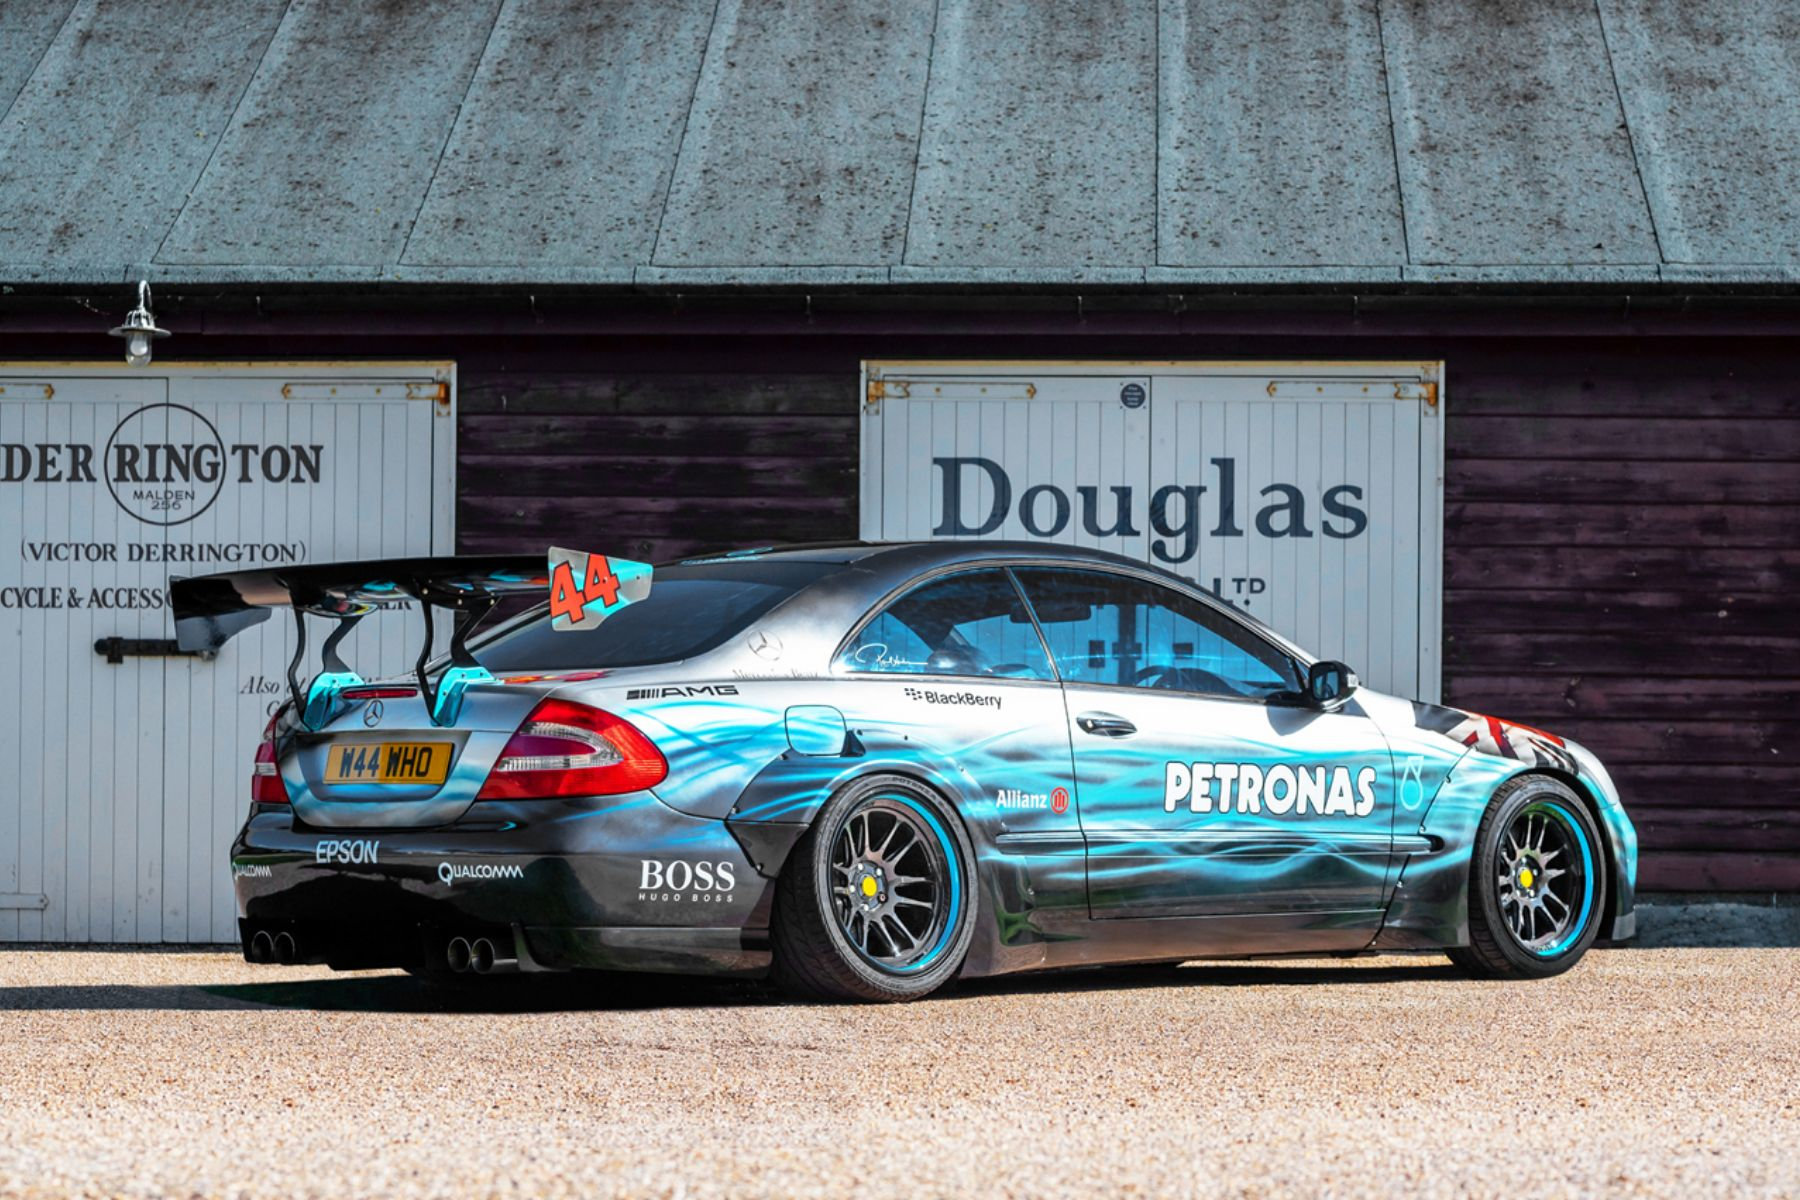 Lewis Hamilton art car tribute for sale